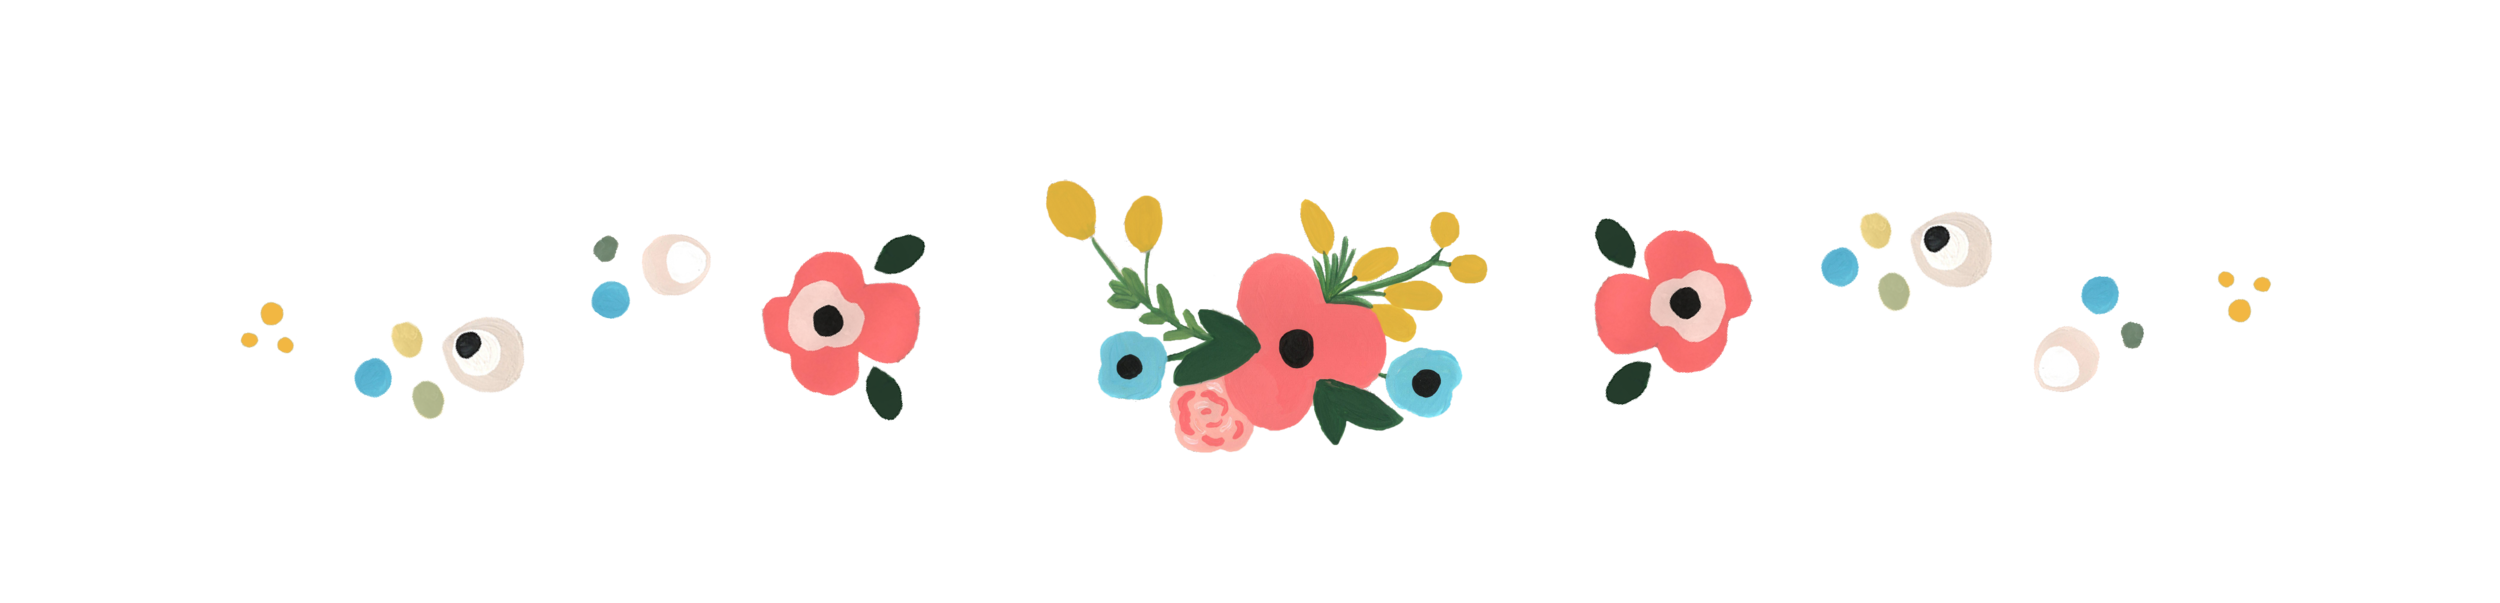 Floral_full width.png